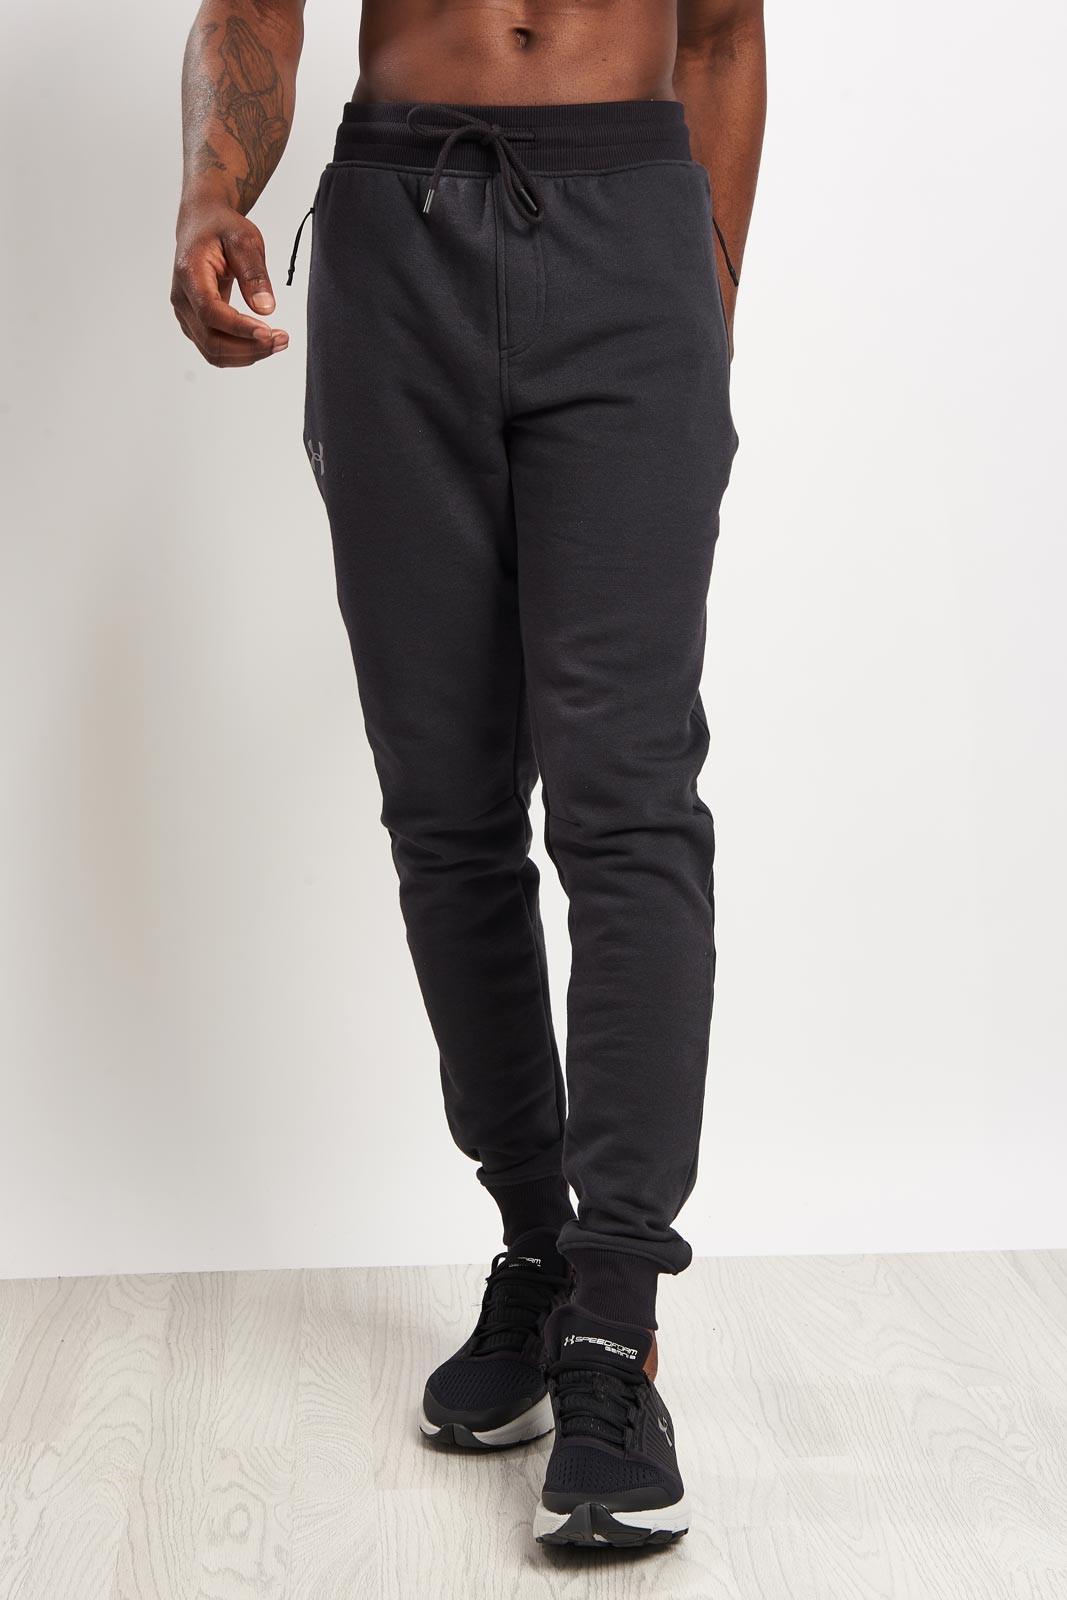 Under Armour Threadborne Stacked Jogger-Grey image 1 - The Sports Edit